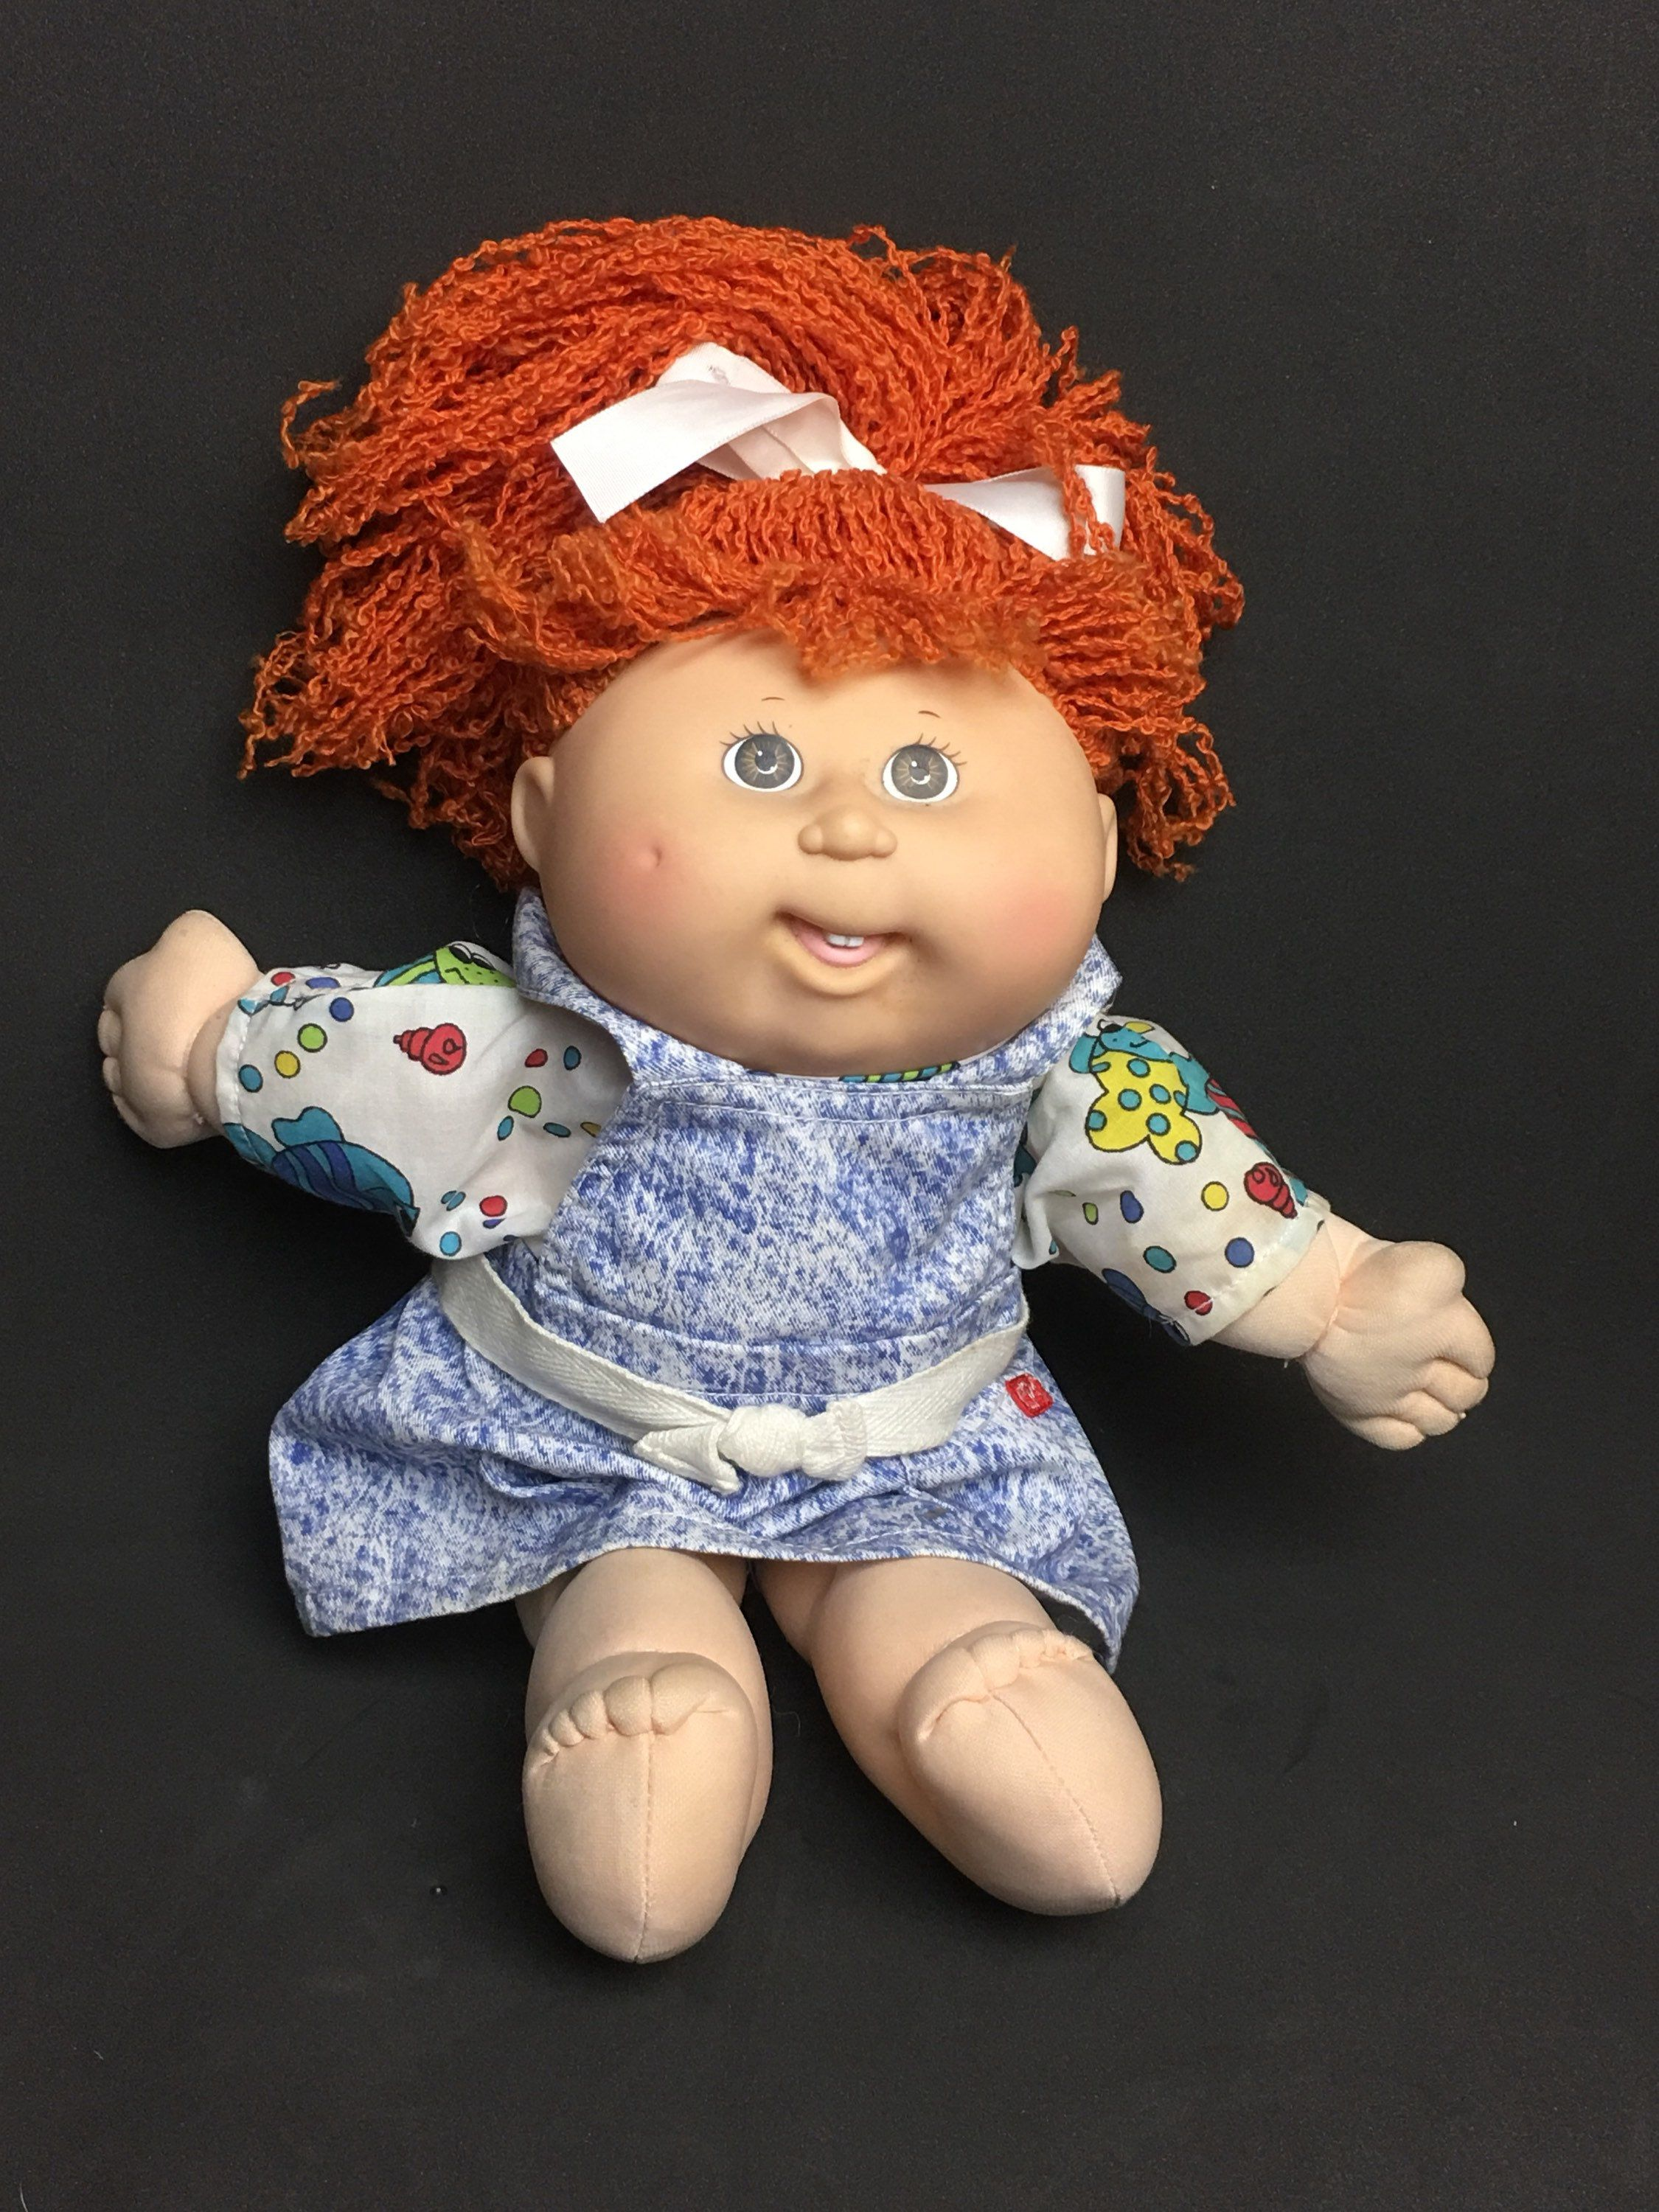 1992 Hasbro Cabbage Patch 13 Kid Girl Doll First Edition Red Hair Open Mouth With Teeth Cpk Dress 31910 31911 By Ana Kids Girls Girl Dolls Cabbage Patch Kids